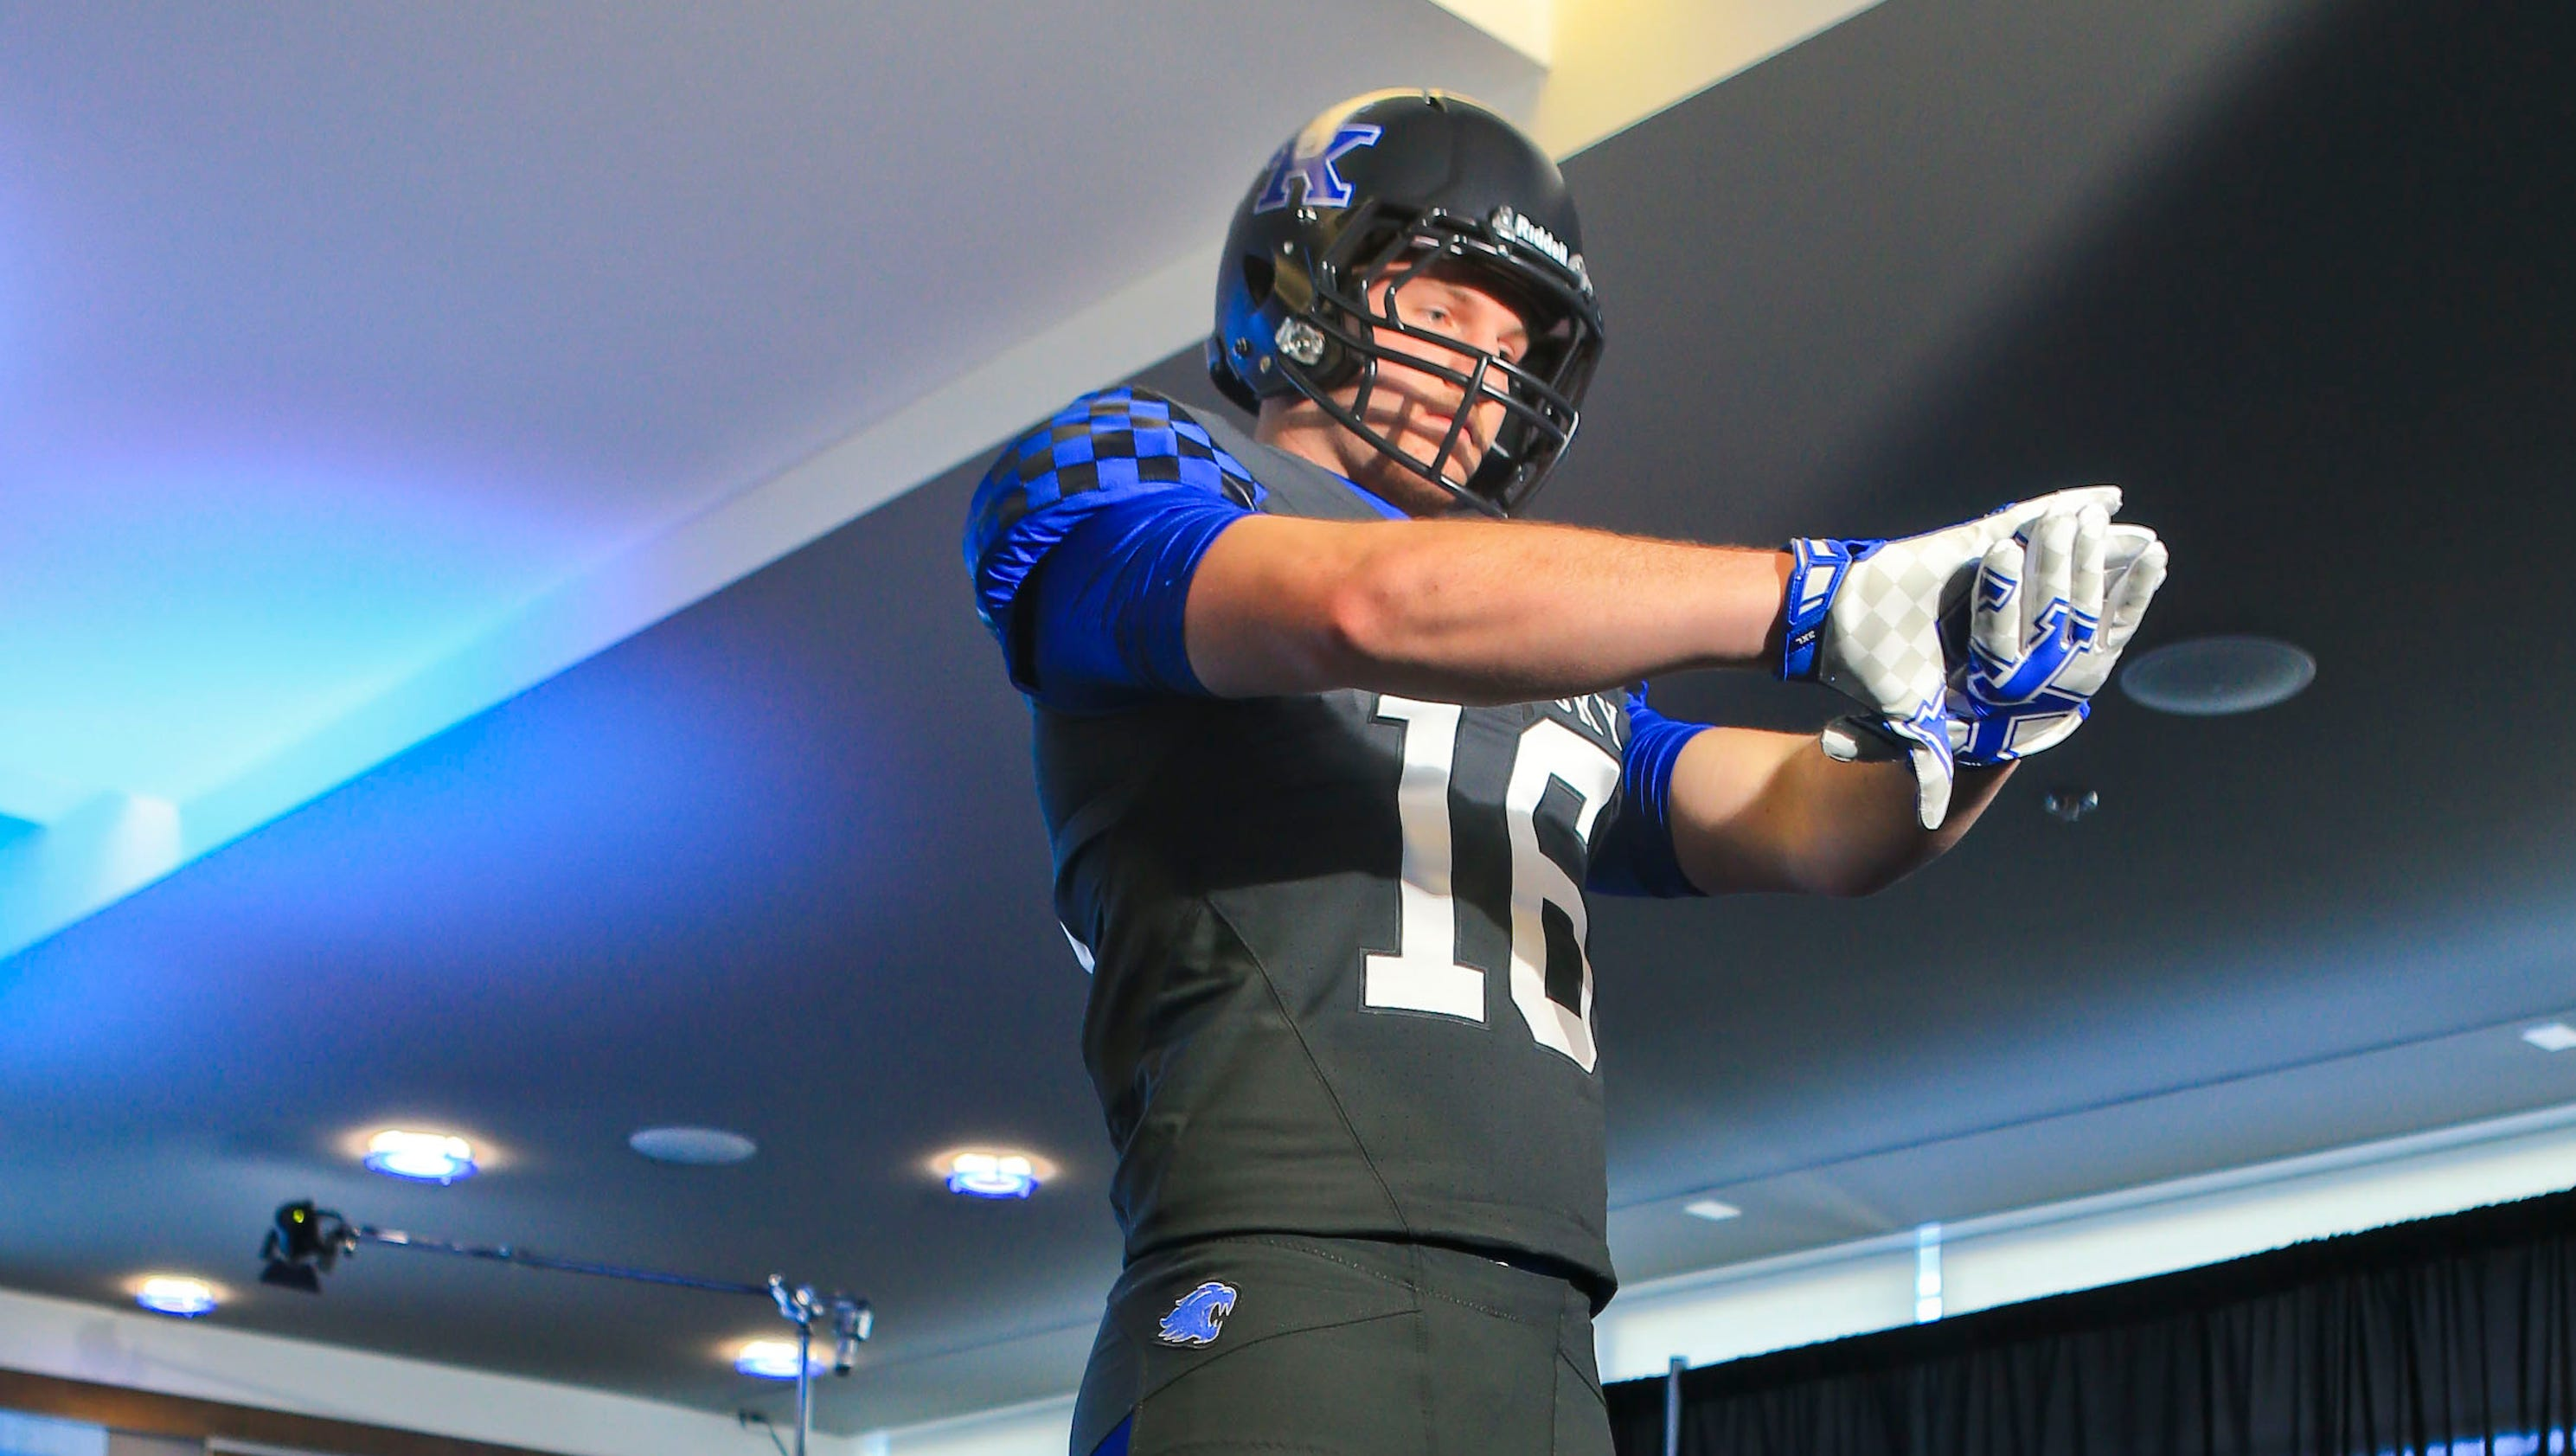 Kentucky Basketball And Football Getting New Uniforms: Gallery L Kentucky's New Football, Basketball Uniforms